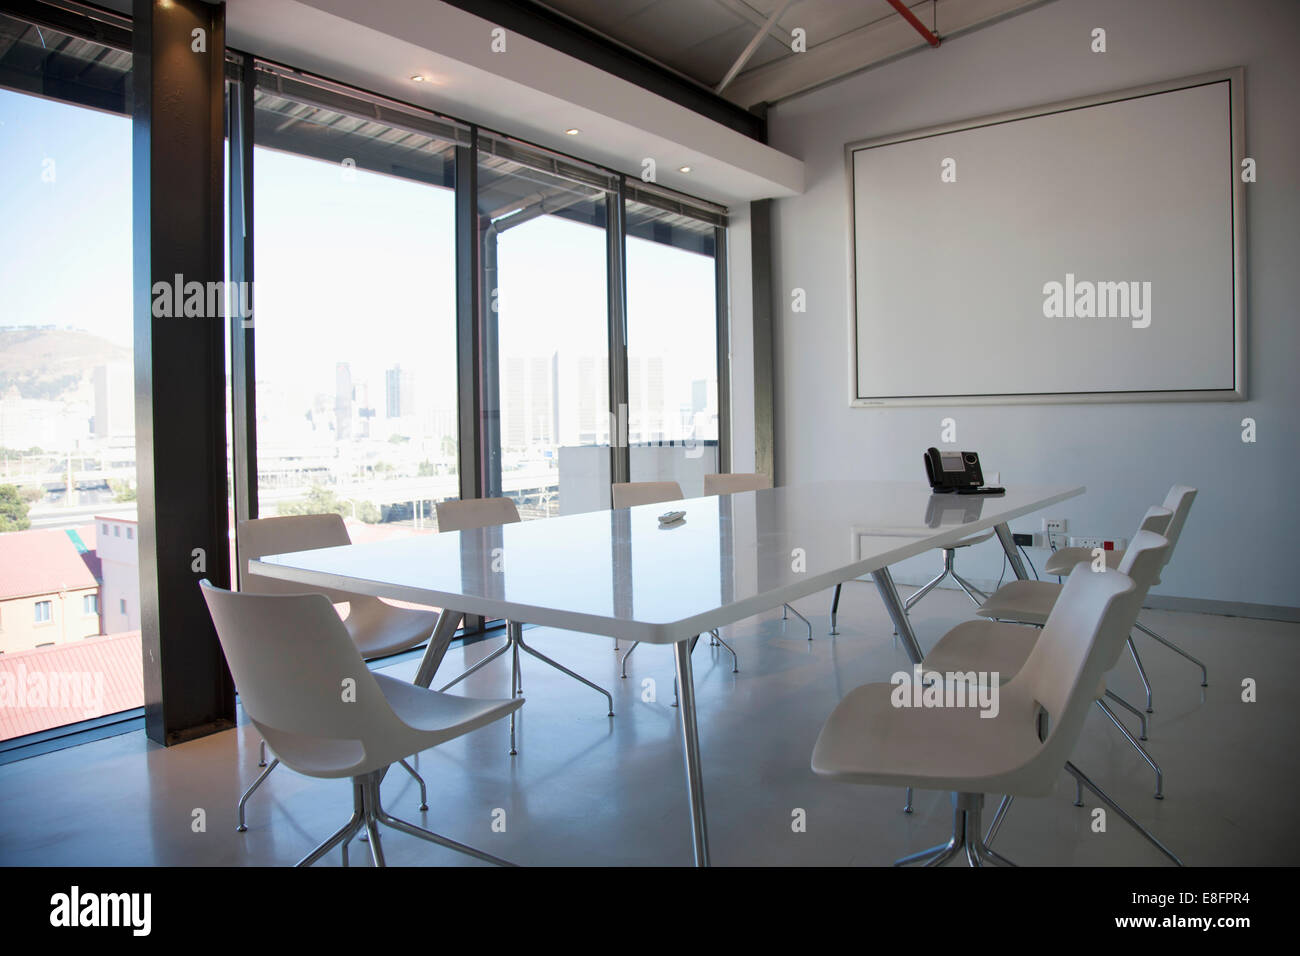 Contemporary empty conference room - Stock Image